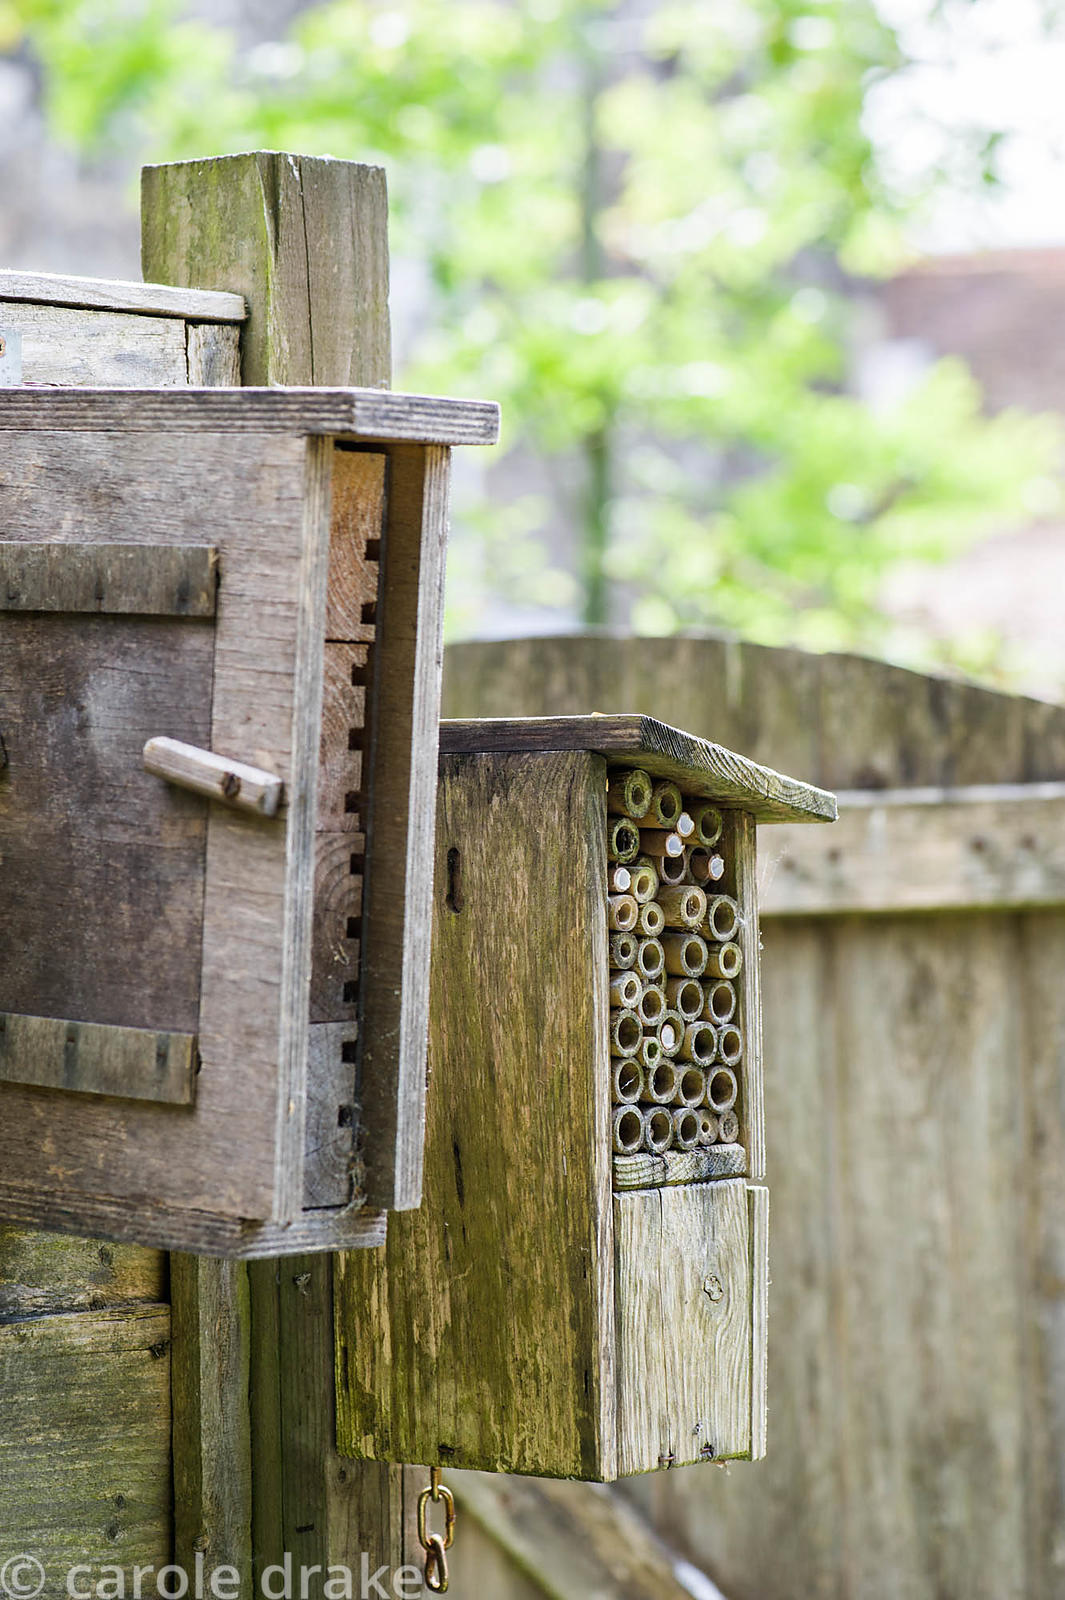 Home made bug-houses for solitary bees and other insects.